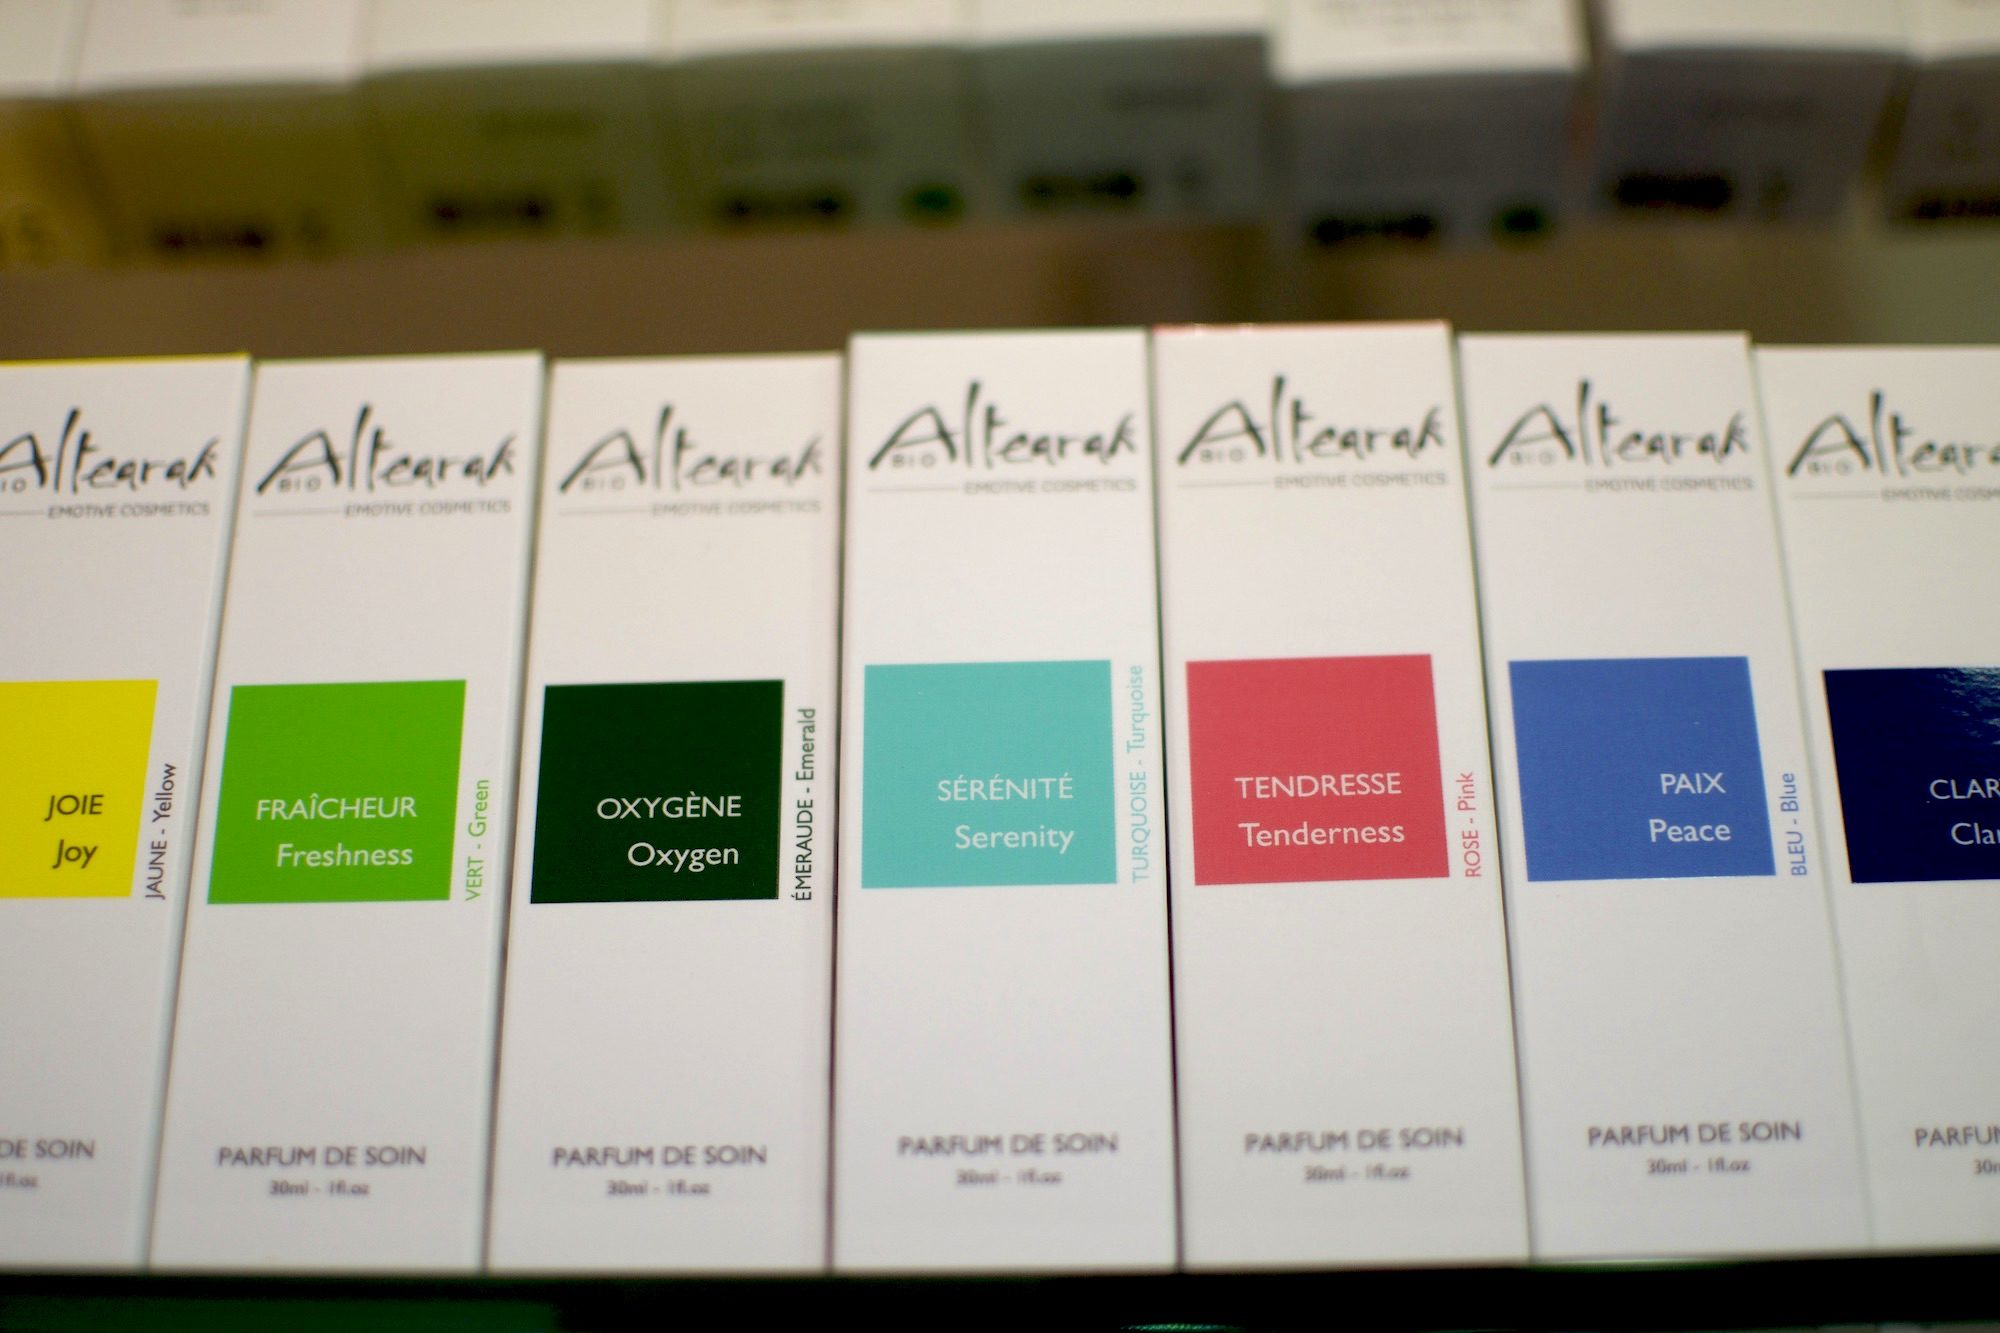 Altearah Bio perfumes are color-coded to match your need and mood.